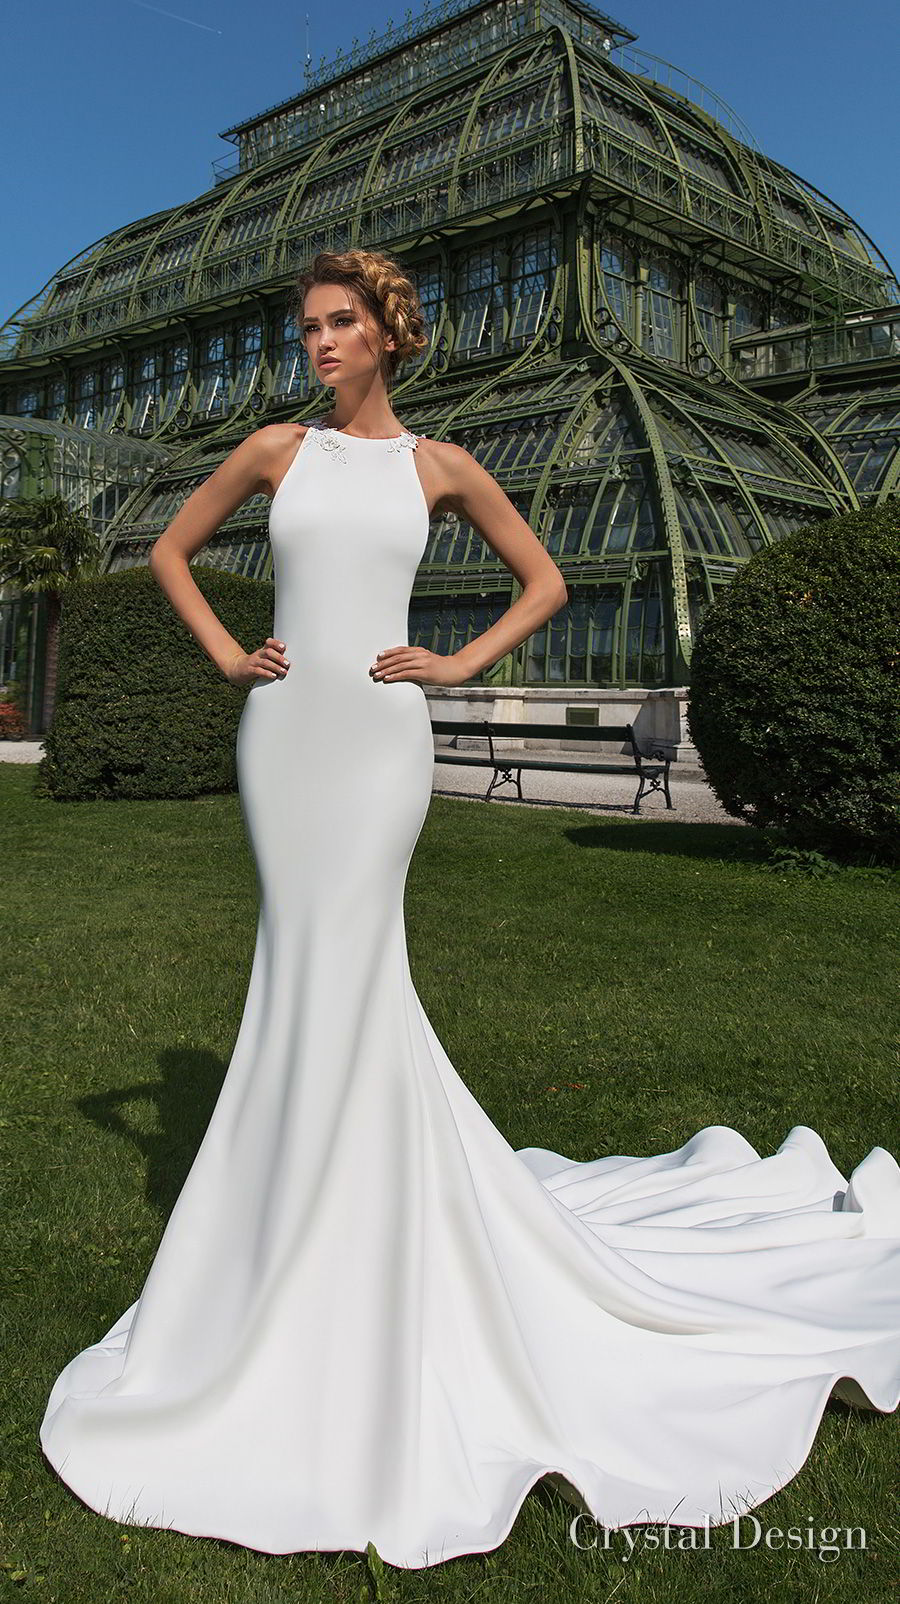 crystal design 2018 sleeveless halter neck simple clean elegant fit and flare wedding dress sheer lace back chapel train (keren) mv